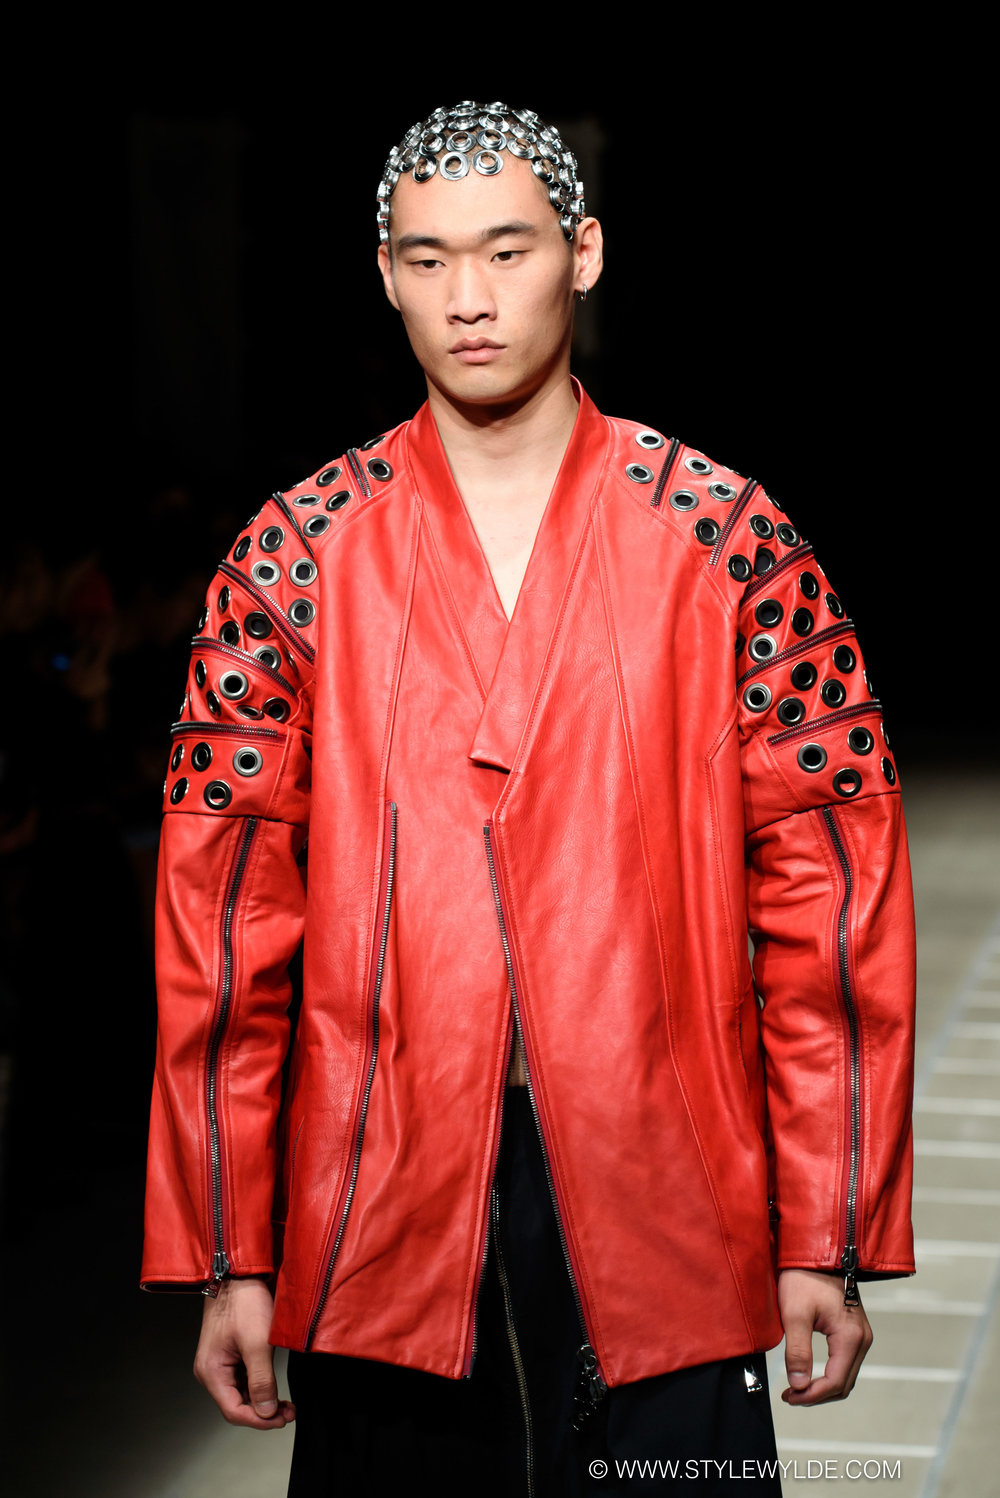 stylewylde_acuod_by_chanu_SS18_runway-2.jpg